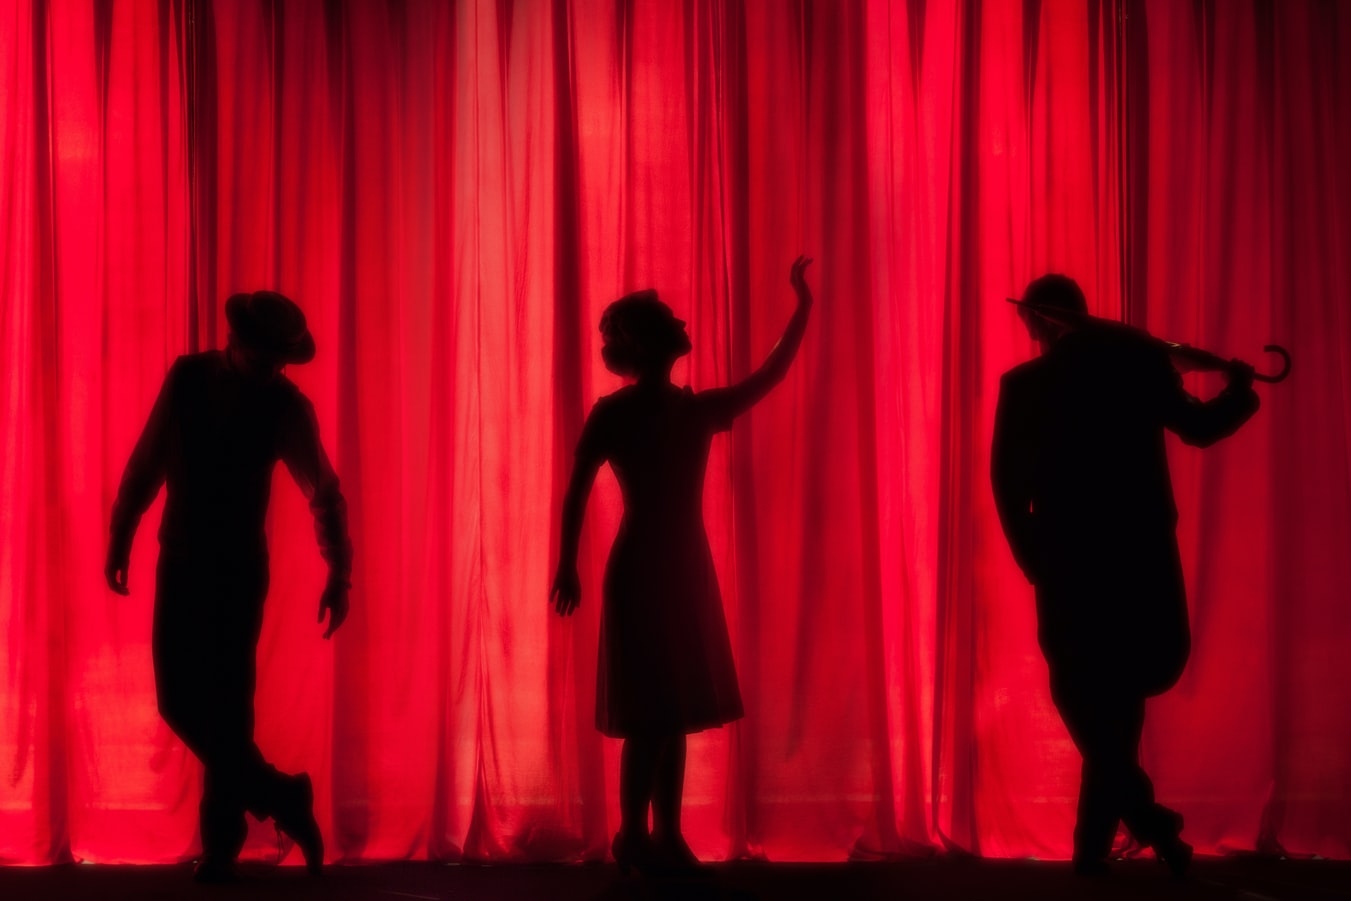 Three backlight Actors in front of a red curtain, performing a play by Canadian Playwrights